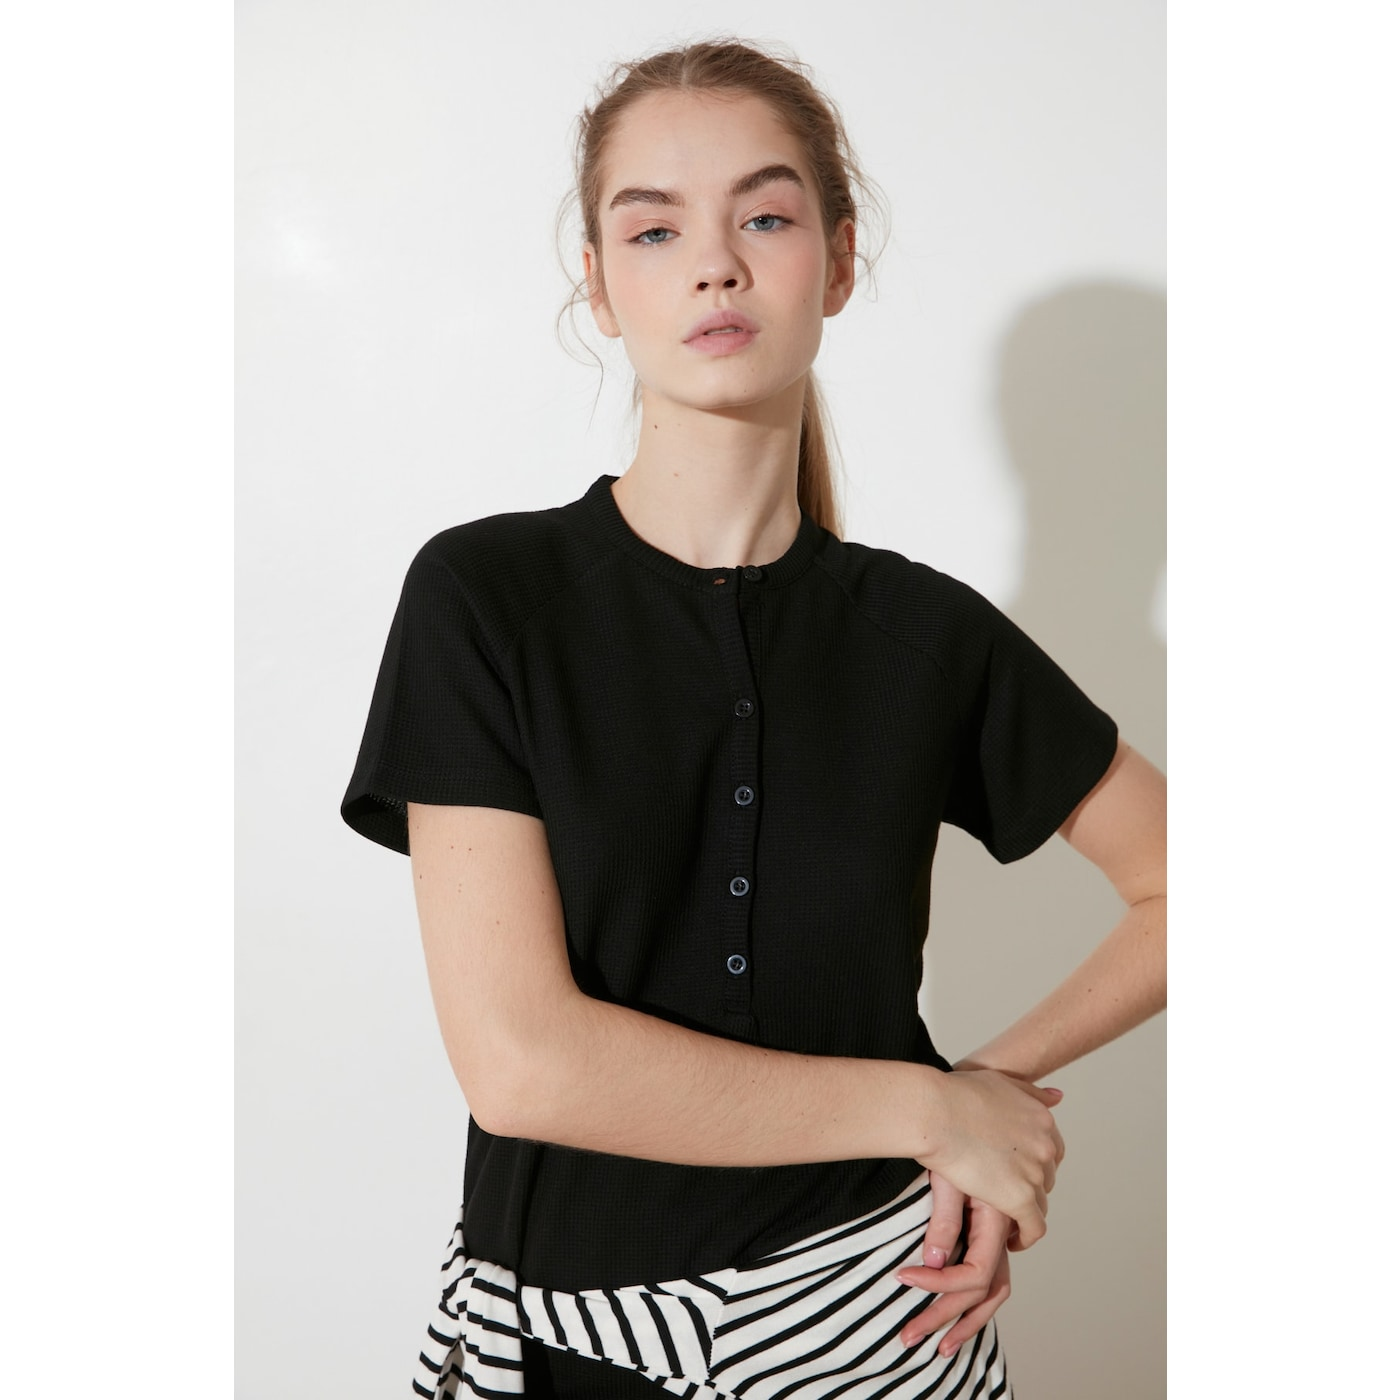 Trendyol Black Button Knitted Blouse dámské L